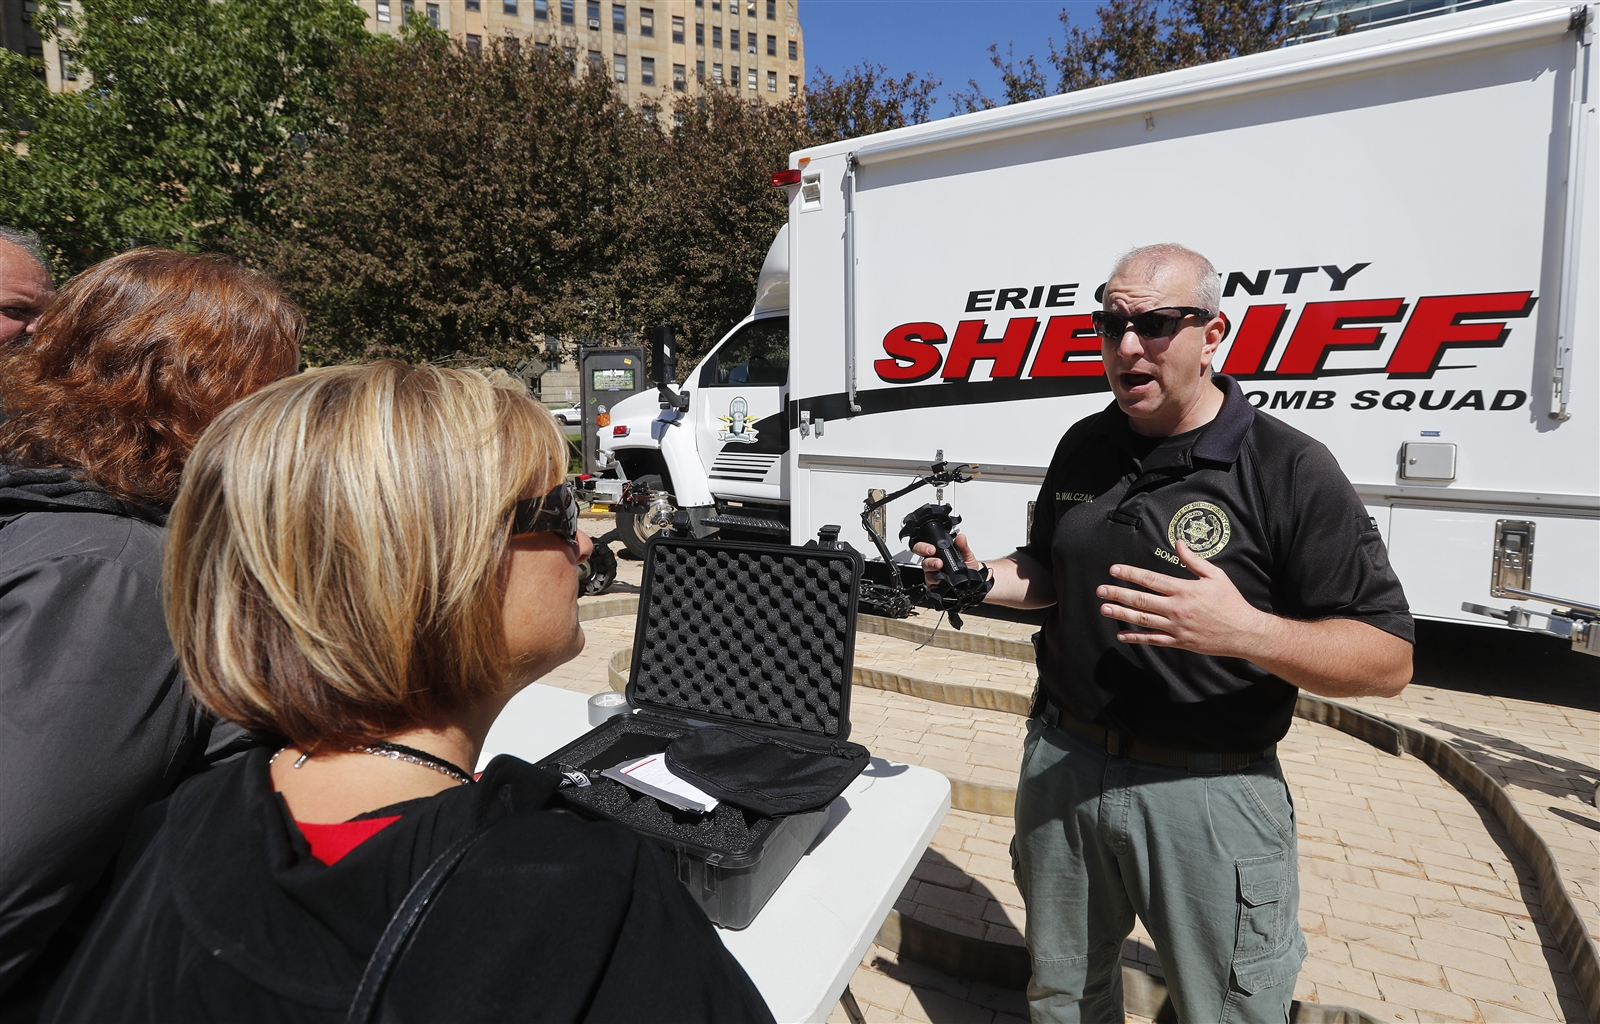 Erie County Sheriffu2019s Deputy Dan Walczak describes a Recon Scout Robot to folks during an outdoor showcase of area law enforcement equipment in Niagara Square in Buffalo Wednesday, June 7, 2017.